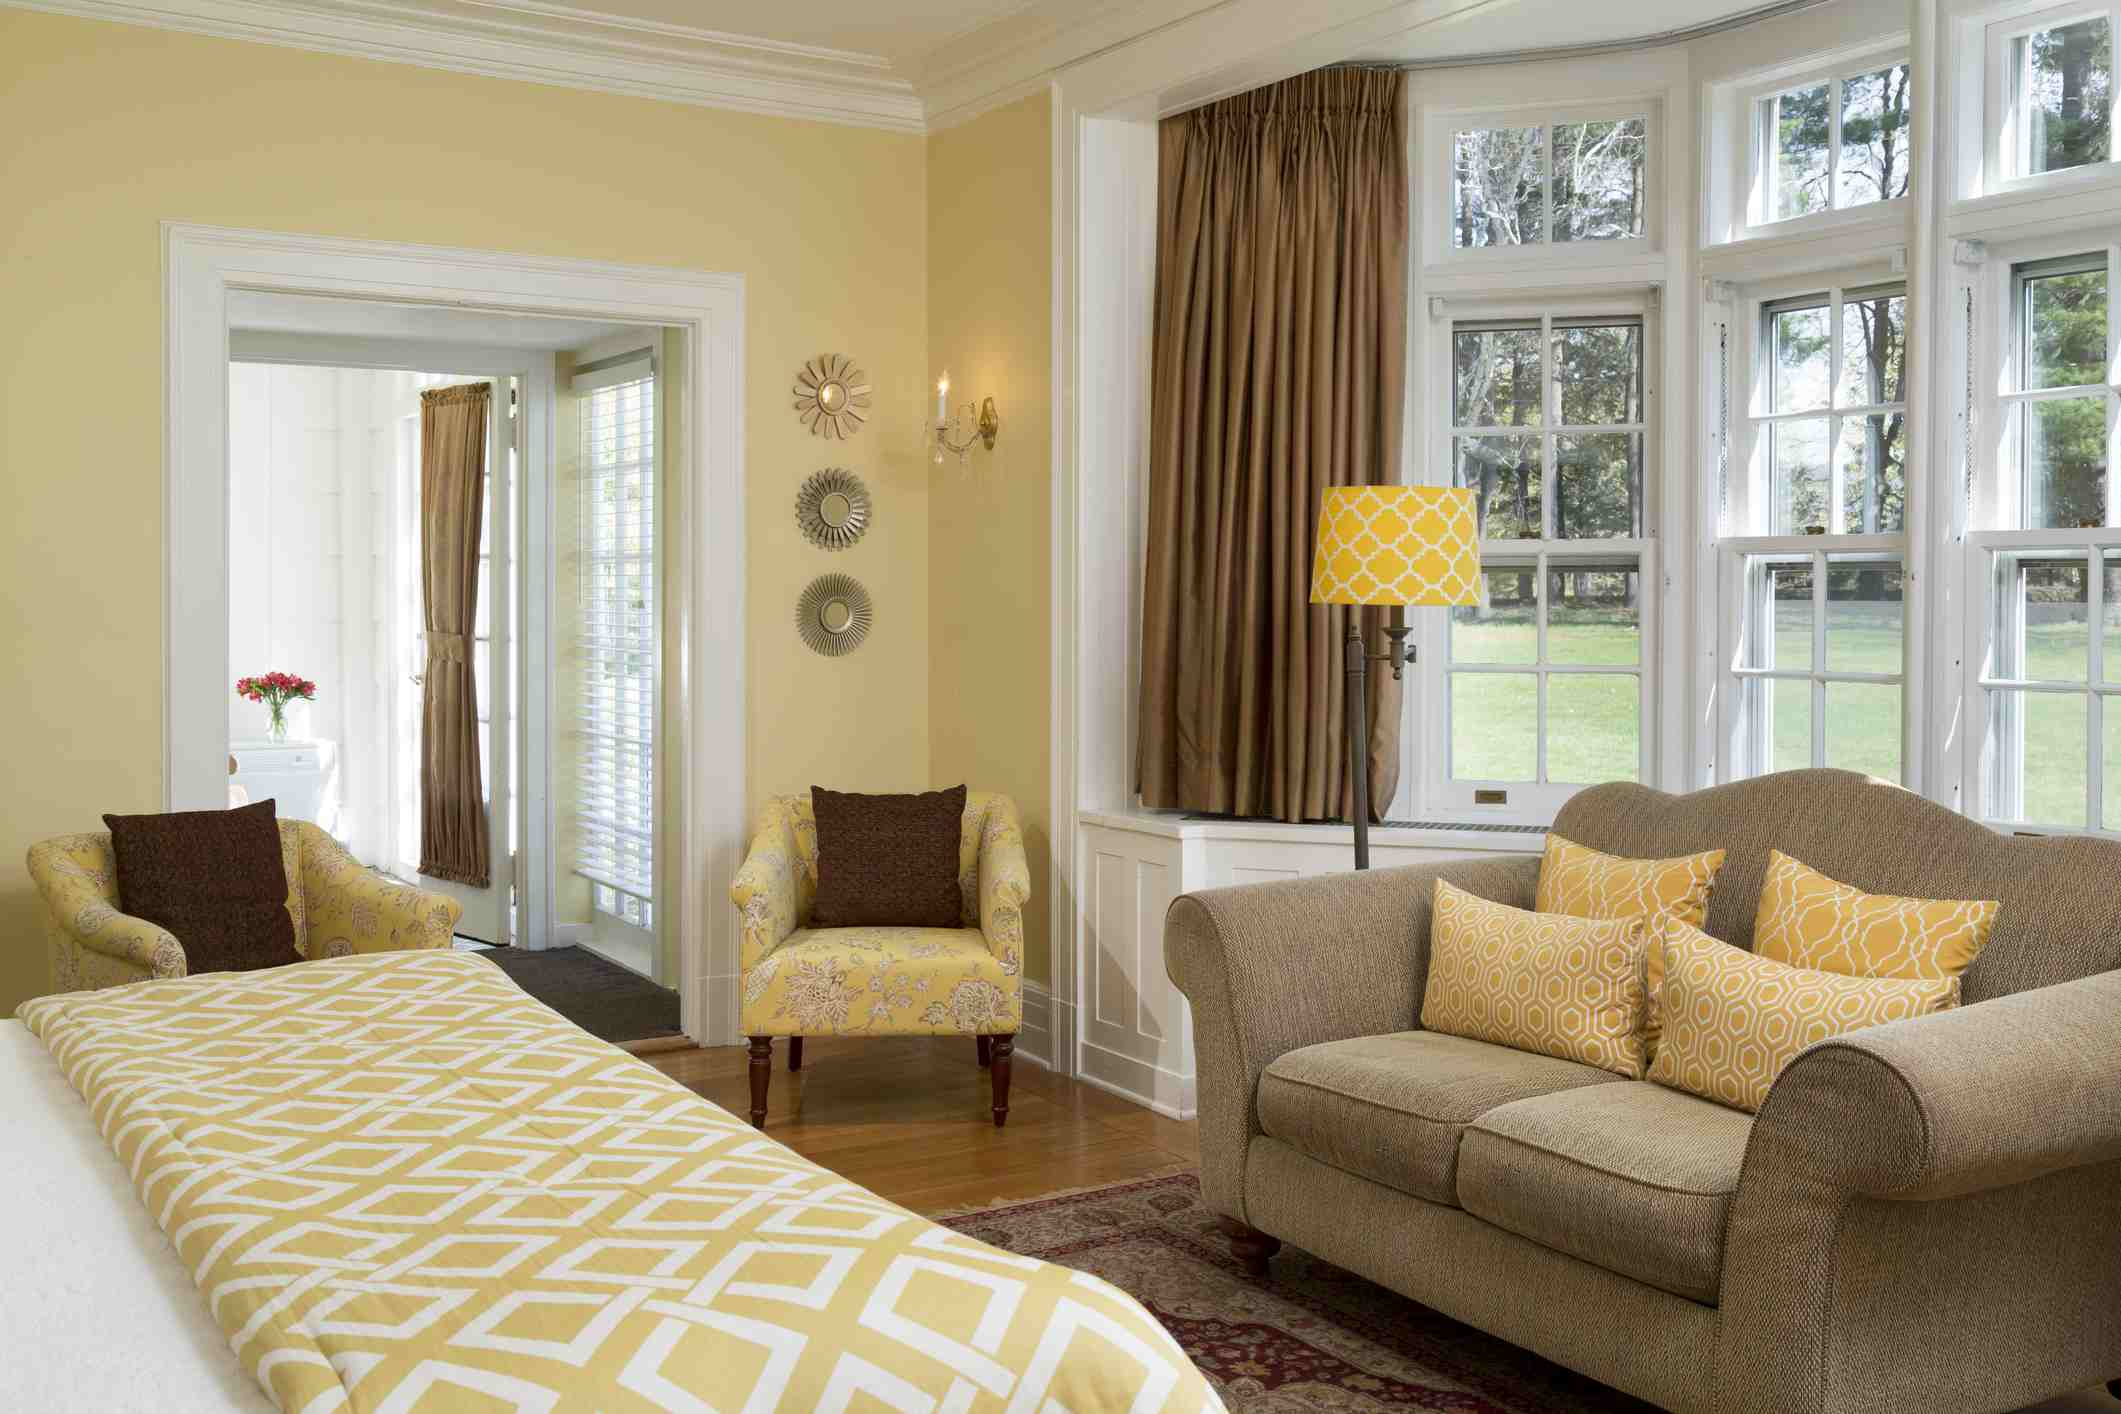 Feng Shui Gold: Decorate Your House With Gold & Yellow